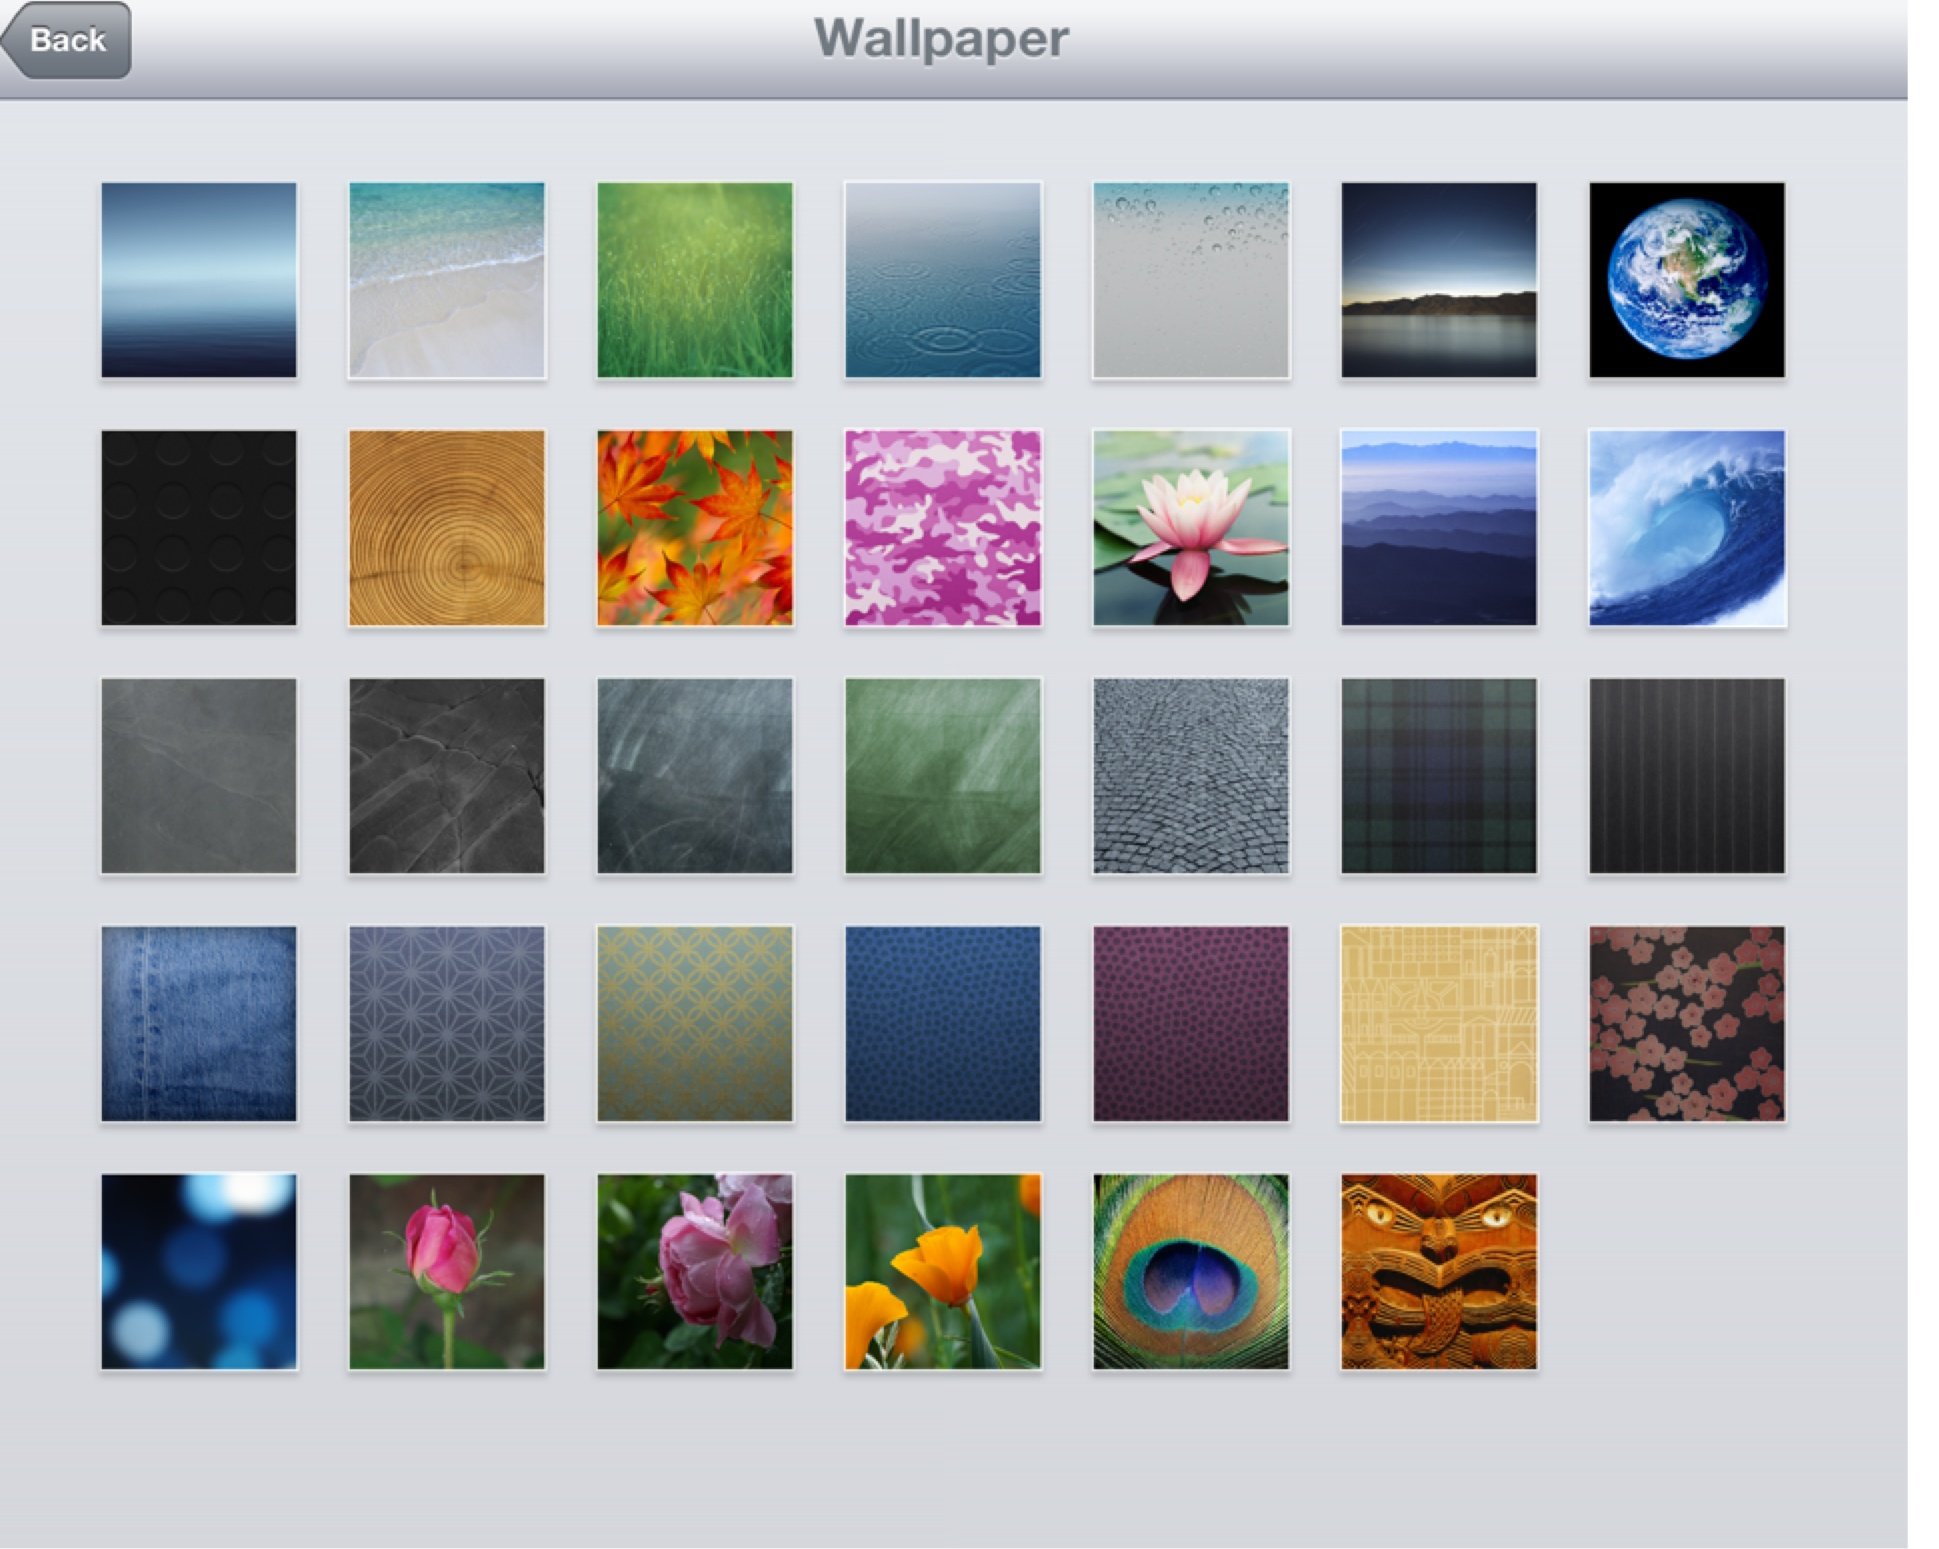 How to Change Your Wallpaper on Your iPhone or iPad part of the